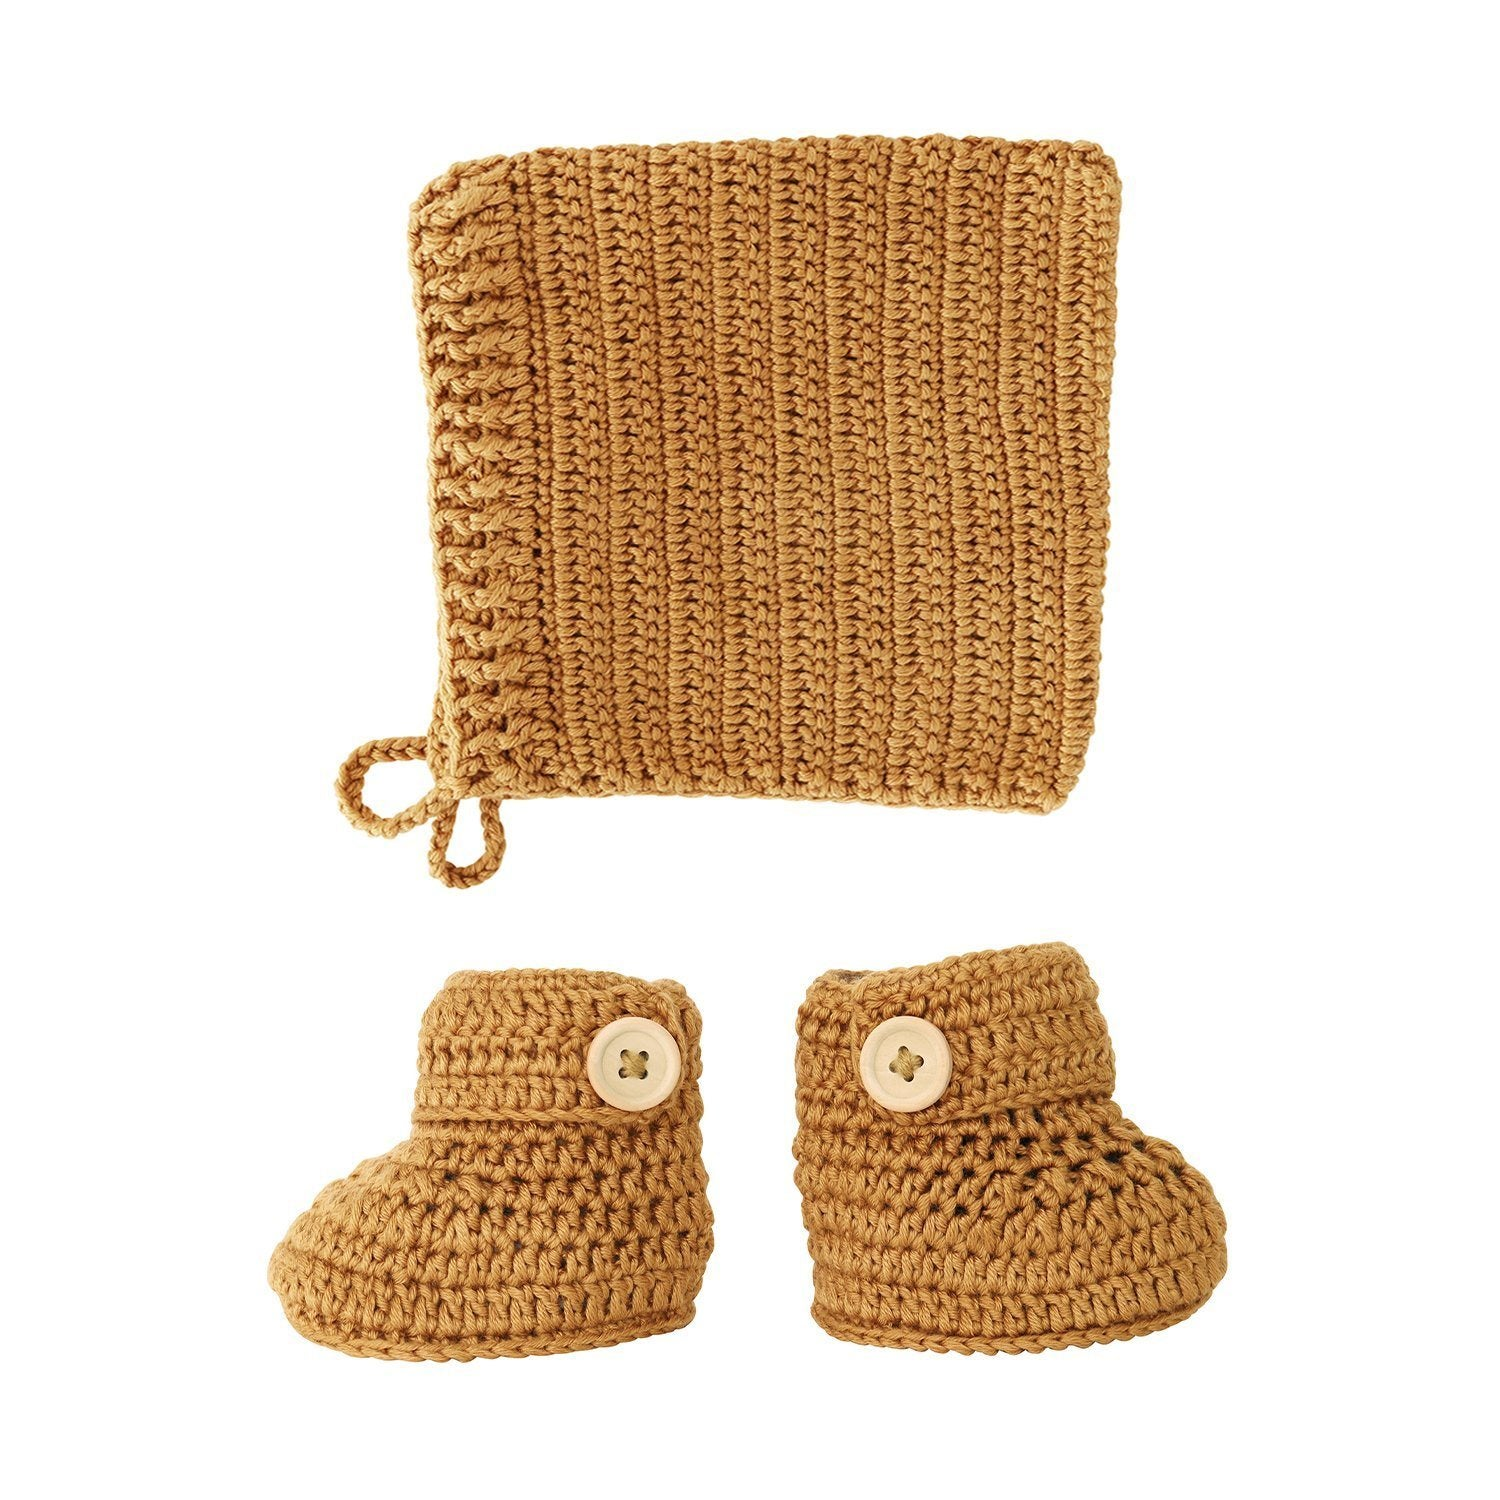 Cinnamon Crochet Bonnet and Bootie Set